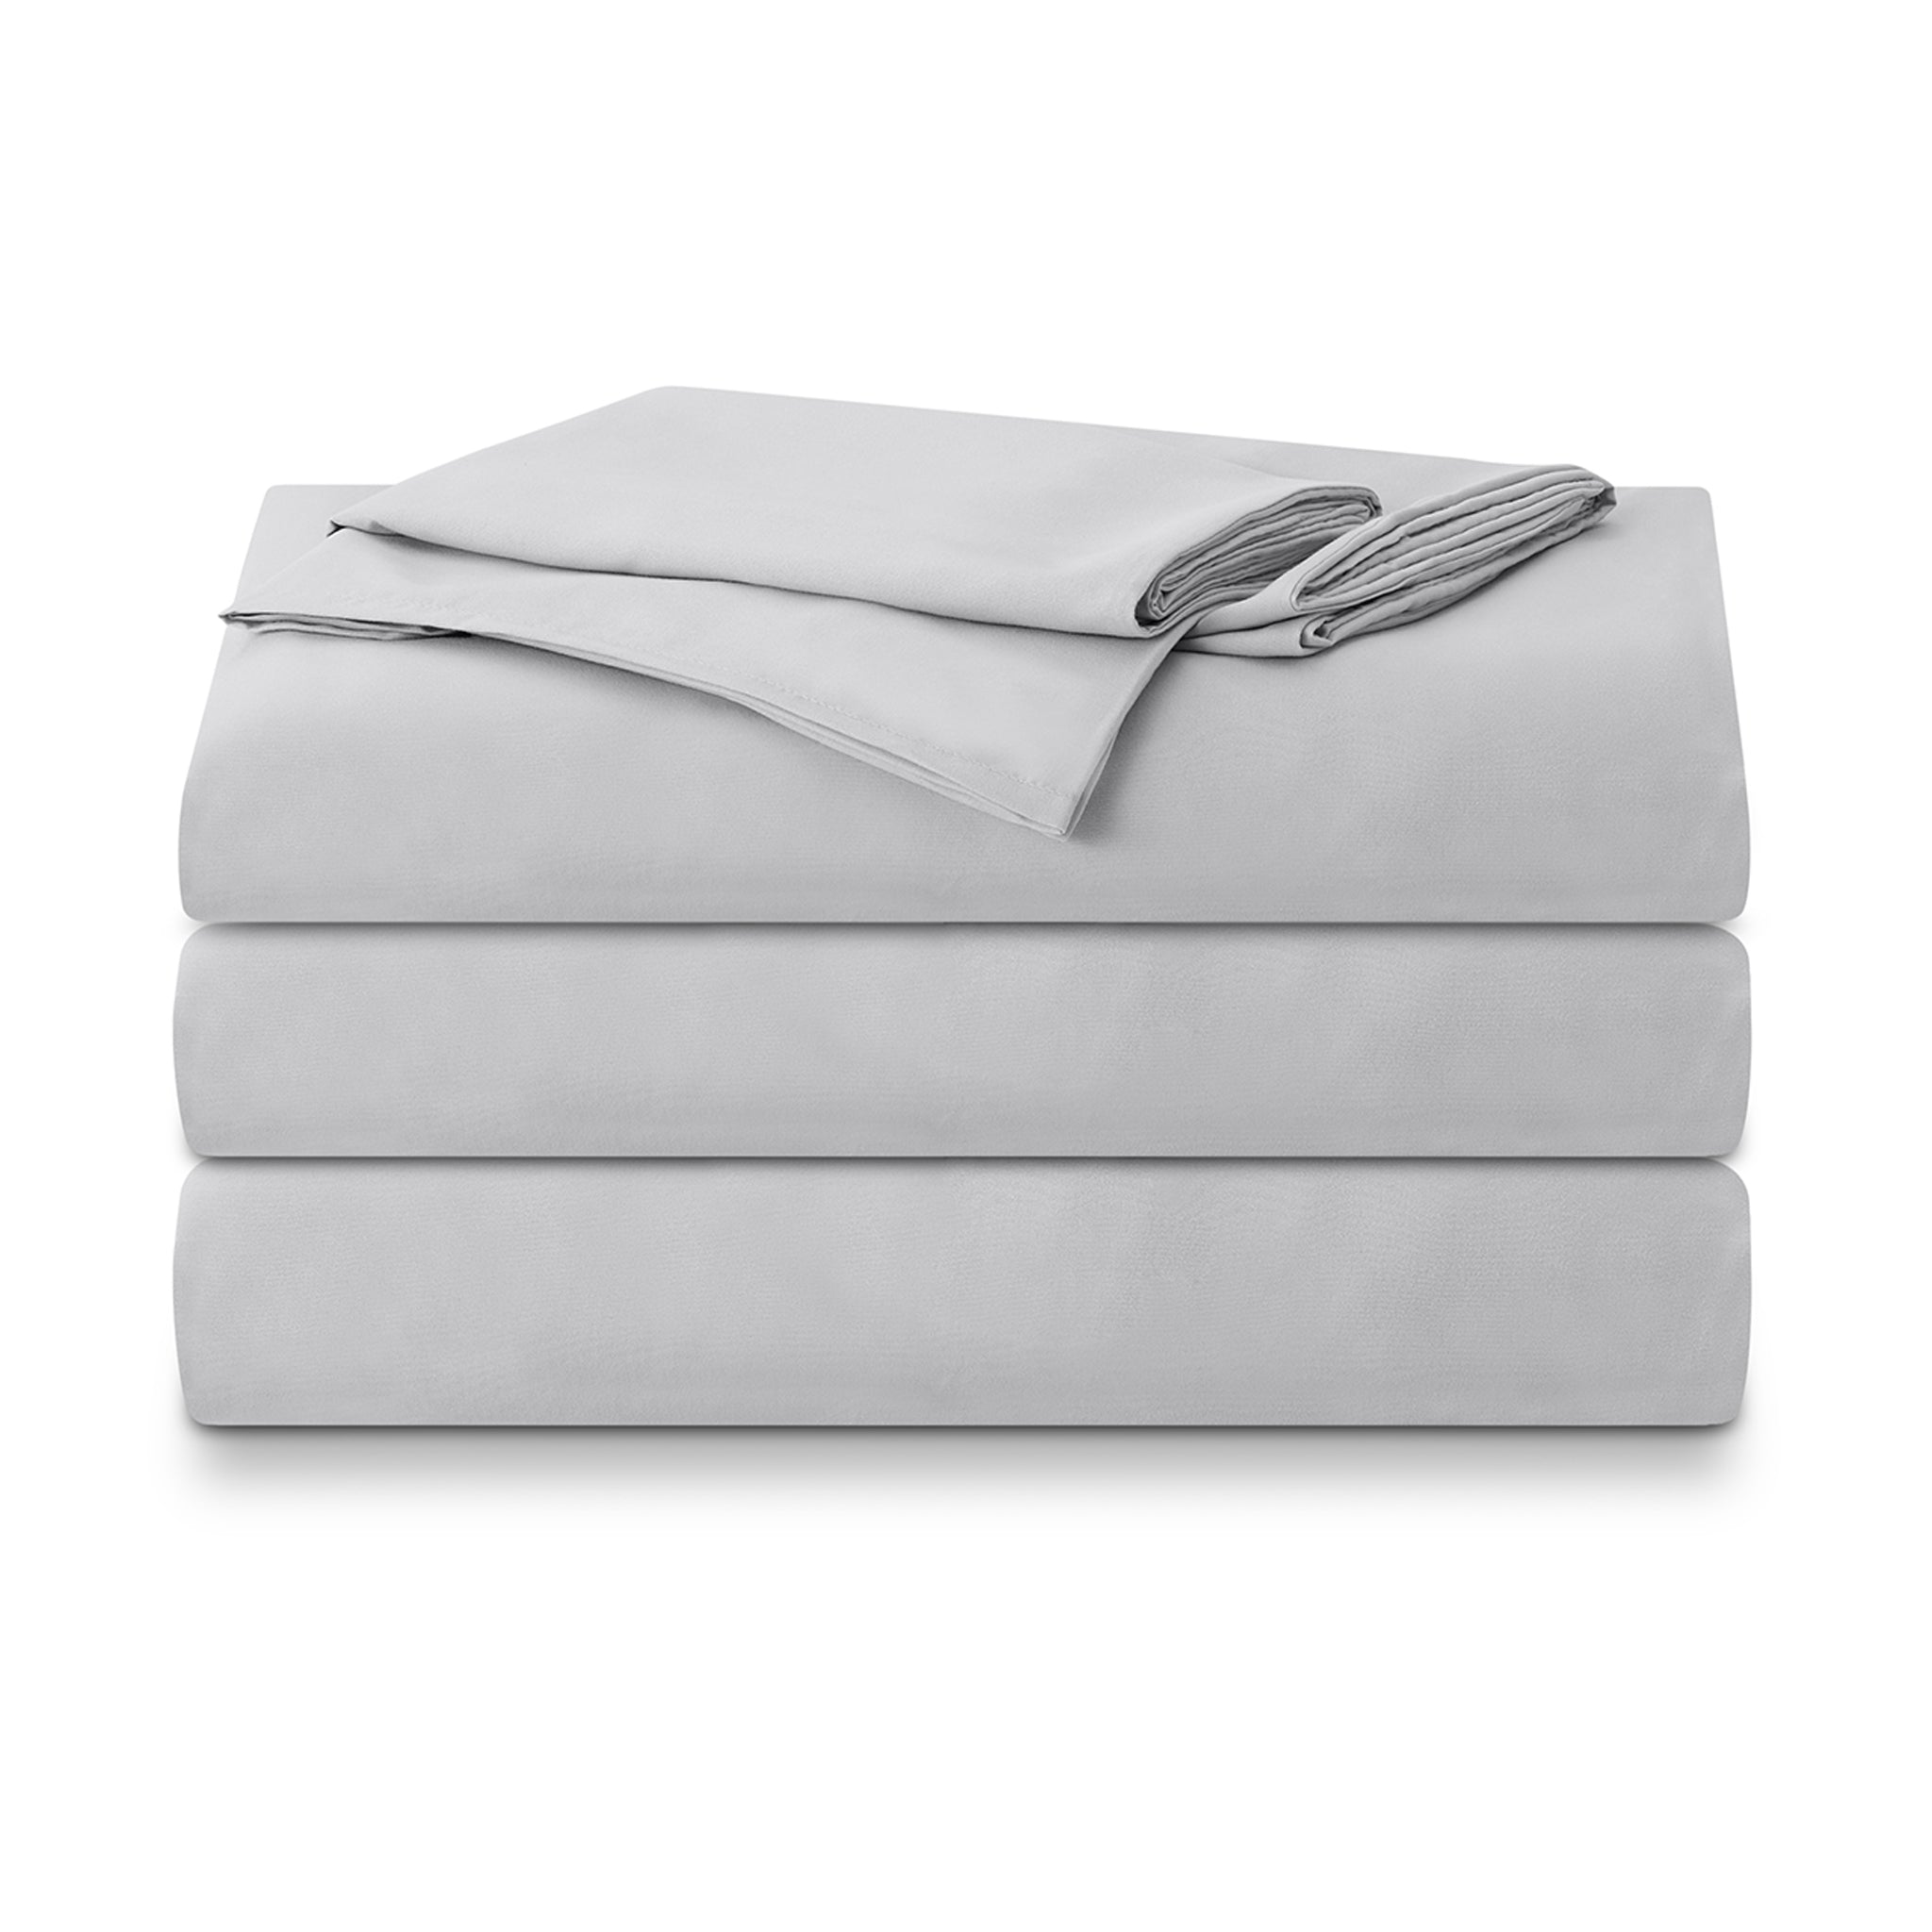 Isselle Auden Bed sheet set & duvet cover | Grey Slate